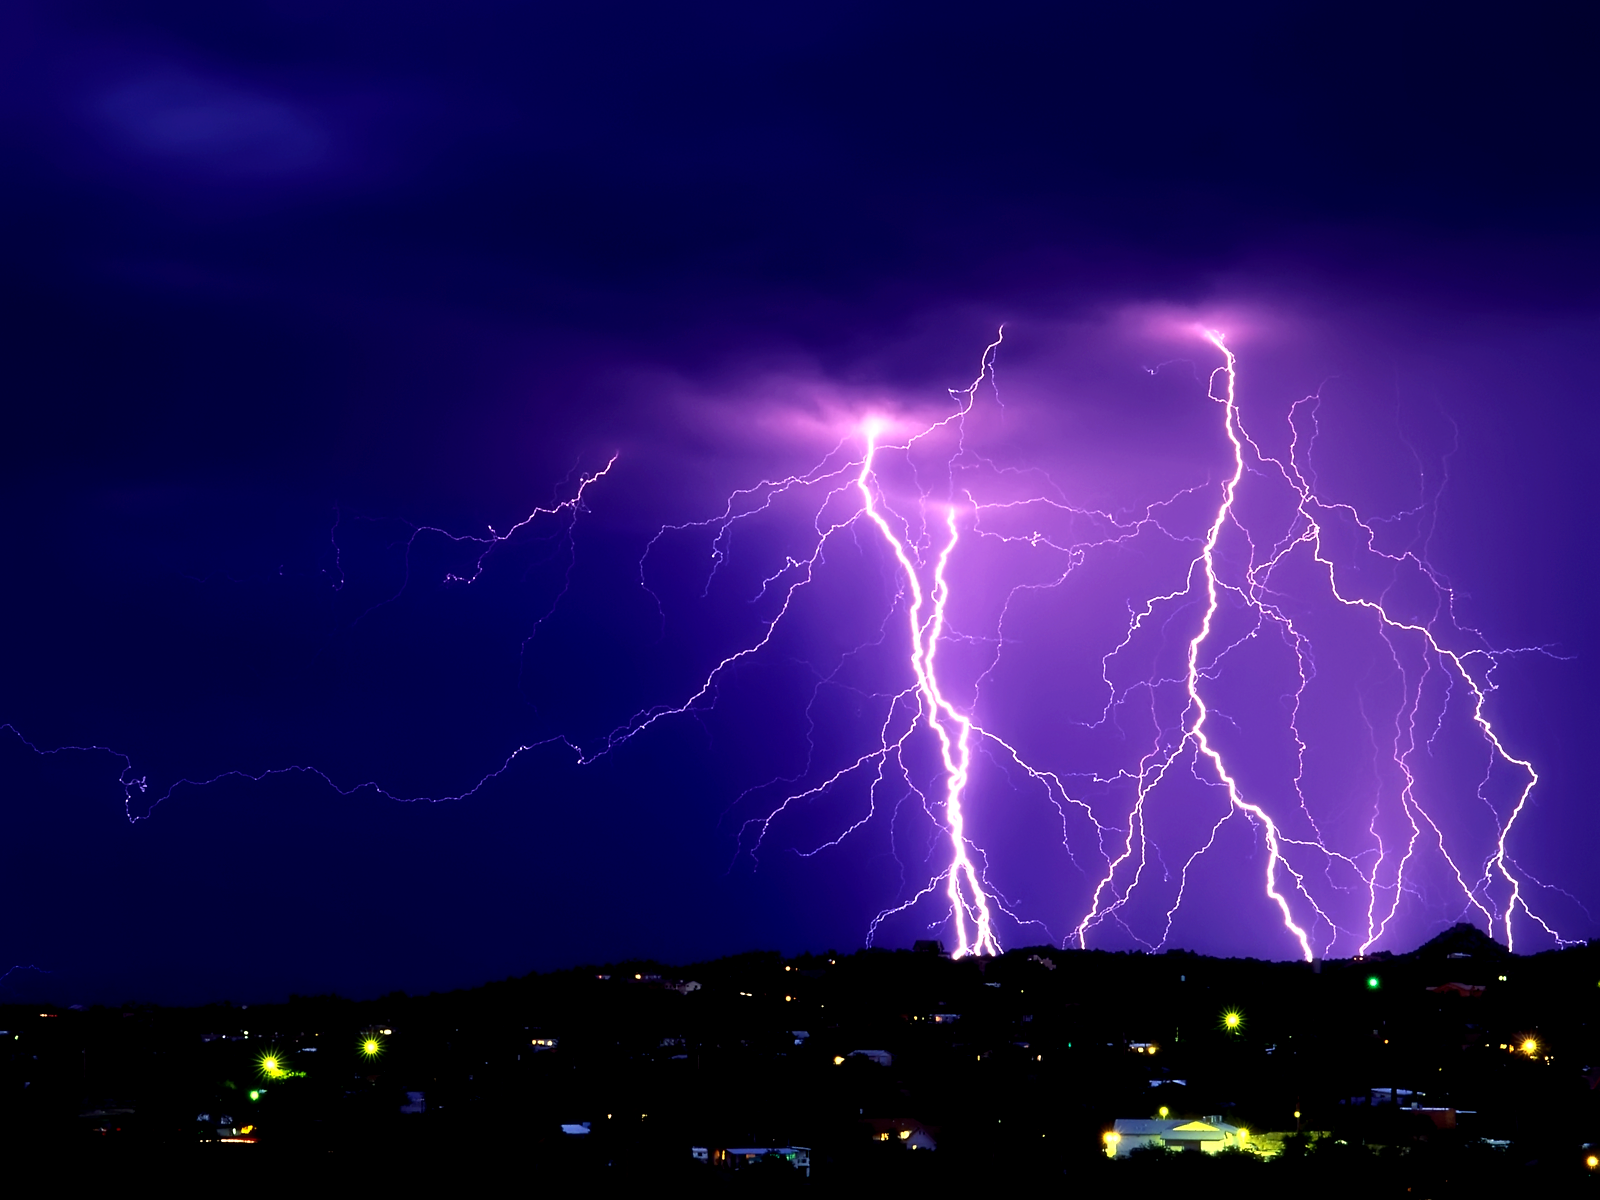 Venezuelau0027s Most Persistent Lightning Storm Keeps Going And Going And . & Bitfury Successfully Tests Lightning Network - Bitcoin News http ... azcodes.com